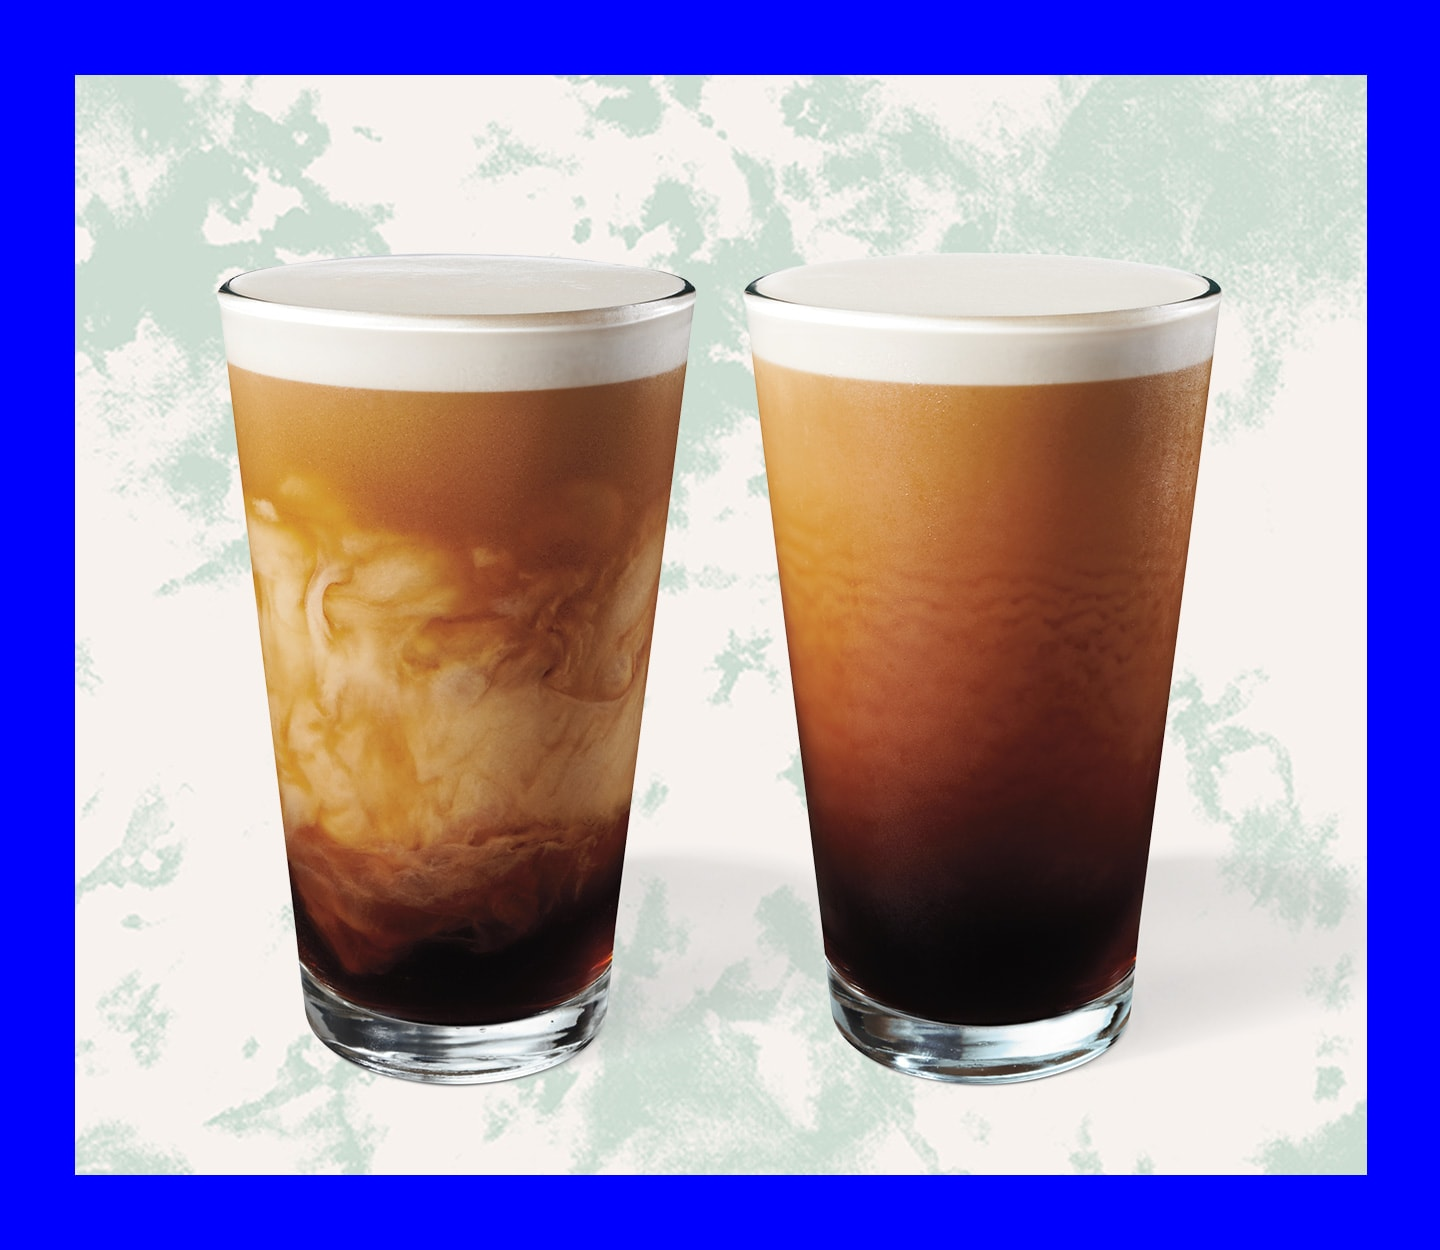 Two cold coffee beverages with crema in glasses.